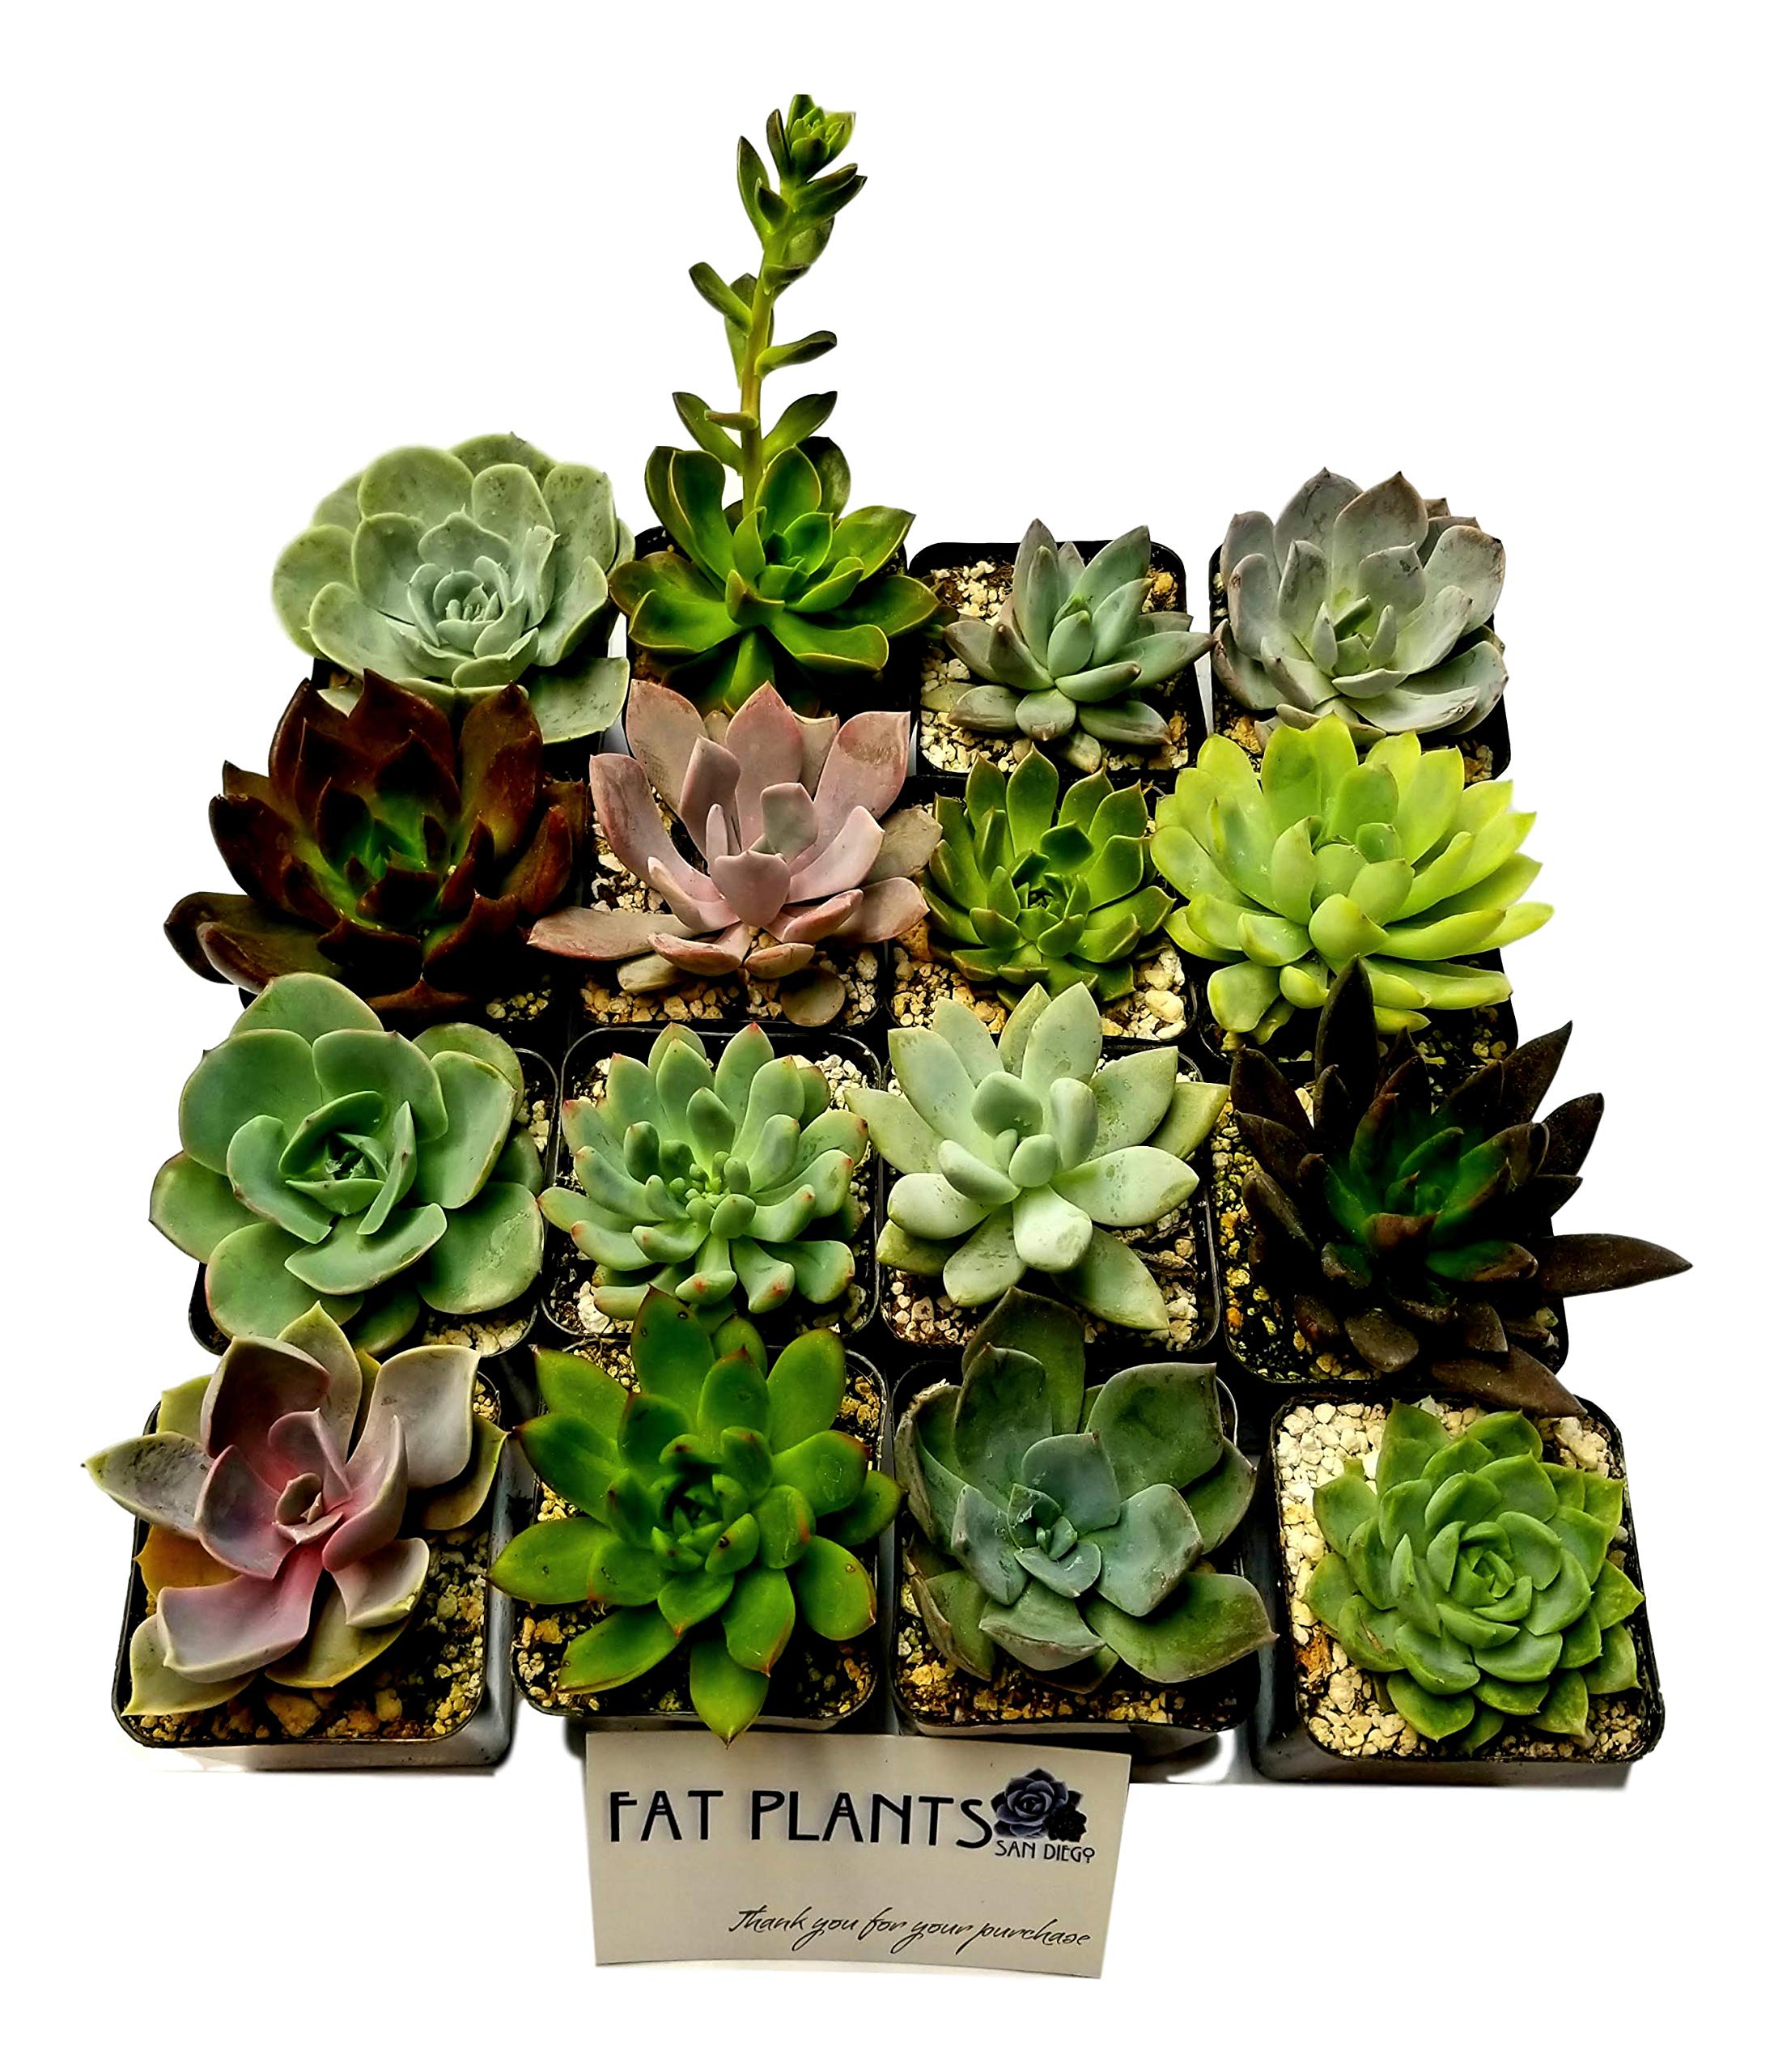 Fat Plants San Diego 2.5 Inch Wedding Rosette Succulent Plants (16) by Fat Plants San Diego